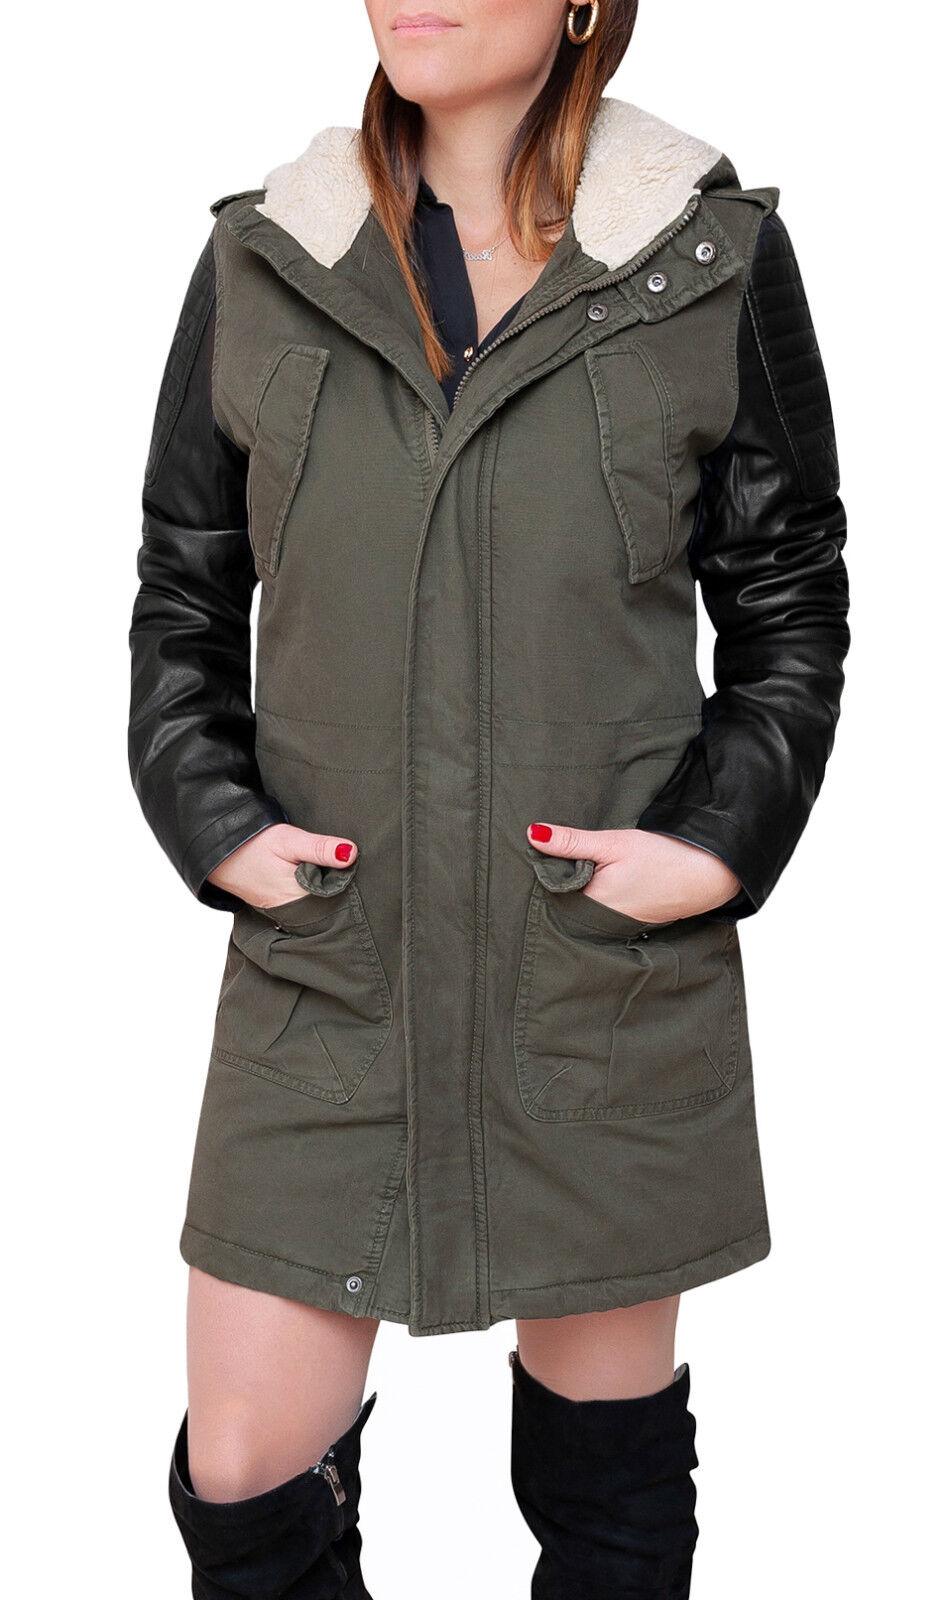 online store 5e810 9cac7 Parka donna Diamond invernale verde casual giacca trench con ...